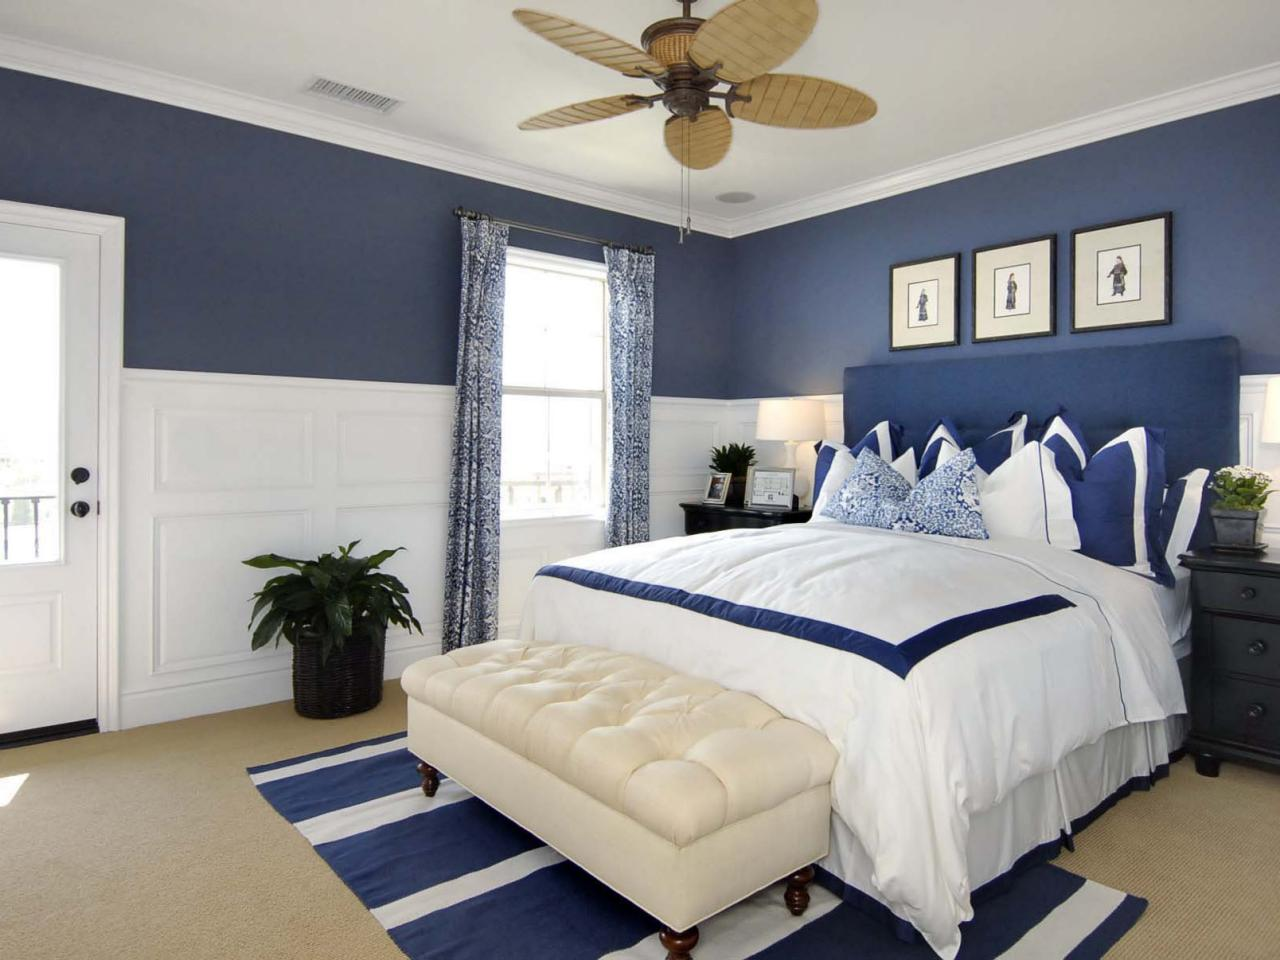 ... Install A Fan In Guest Room 45 Ideas For The Ultimate Guest Room